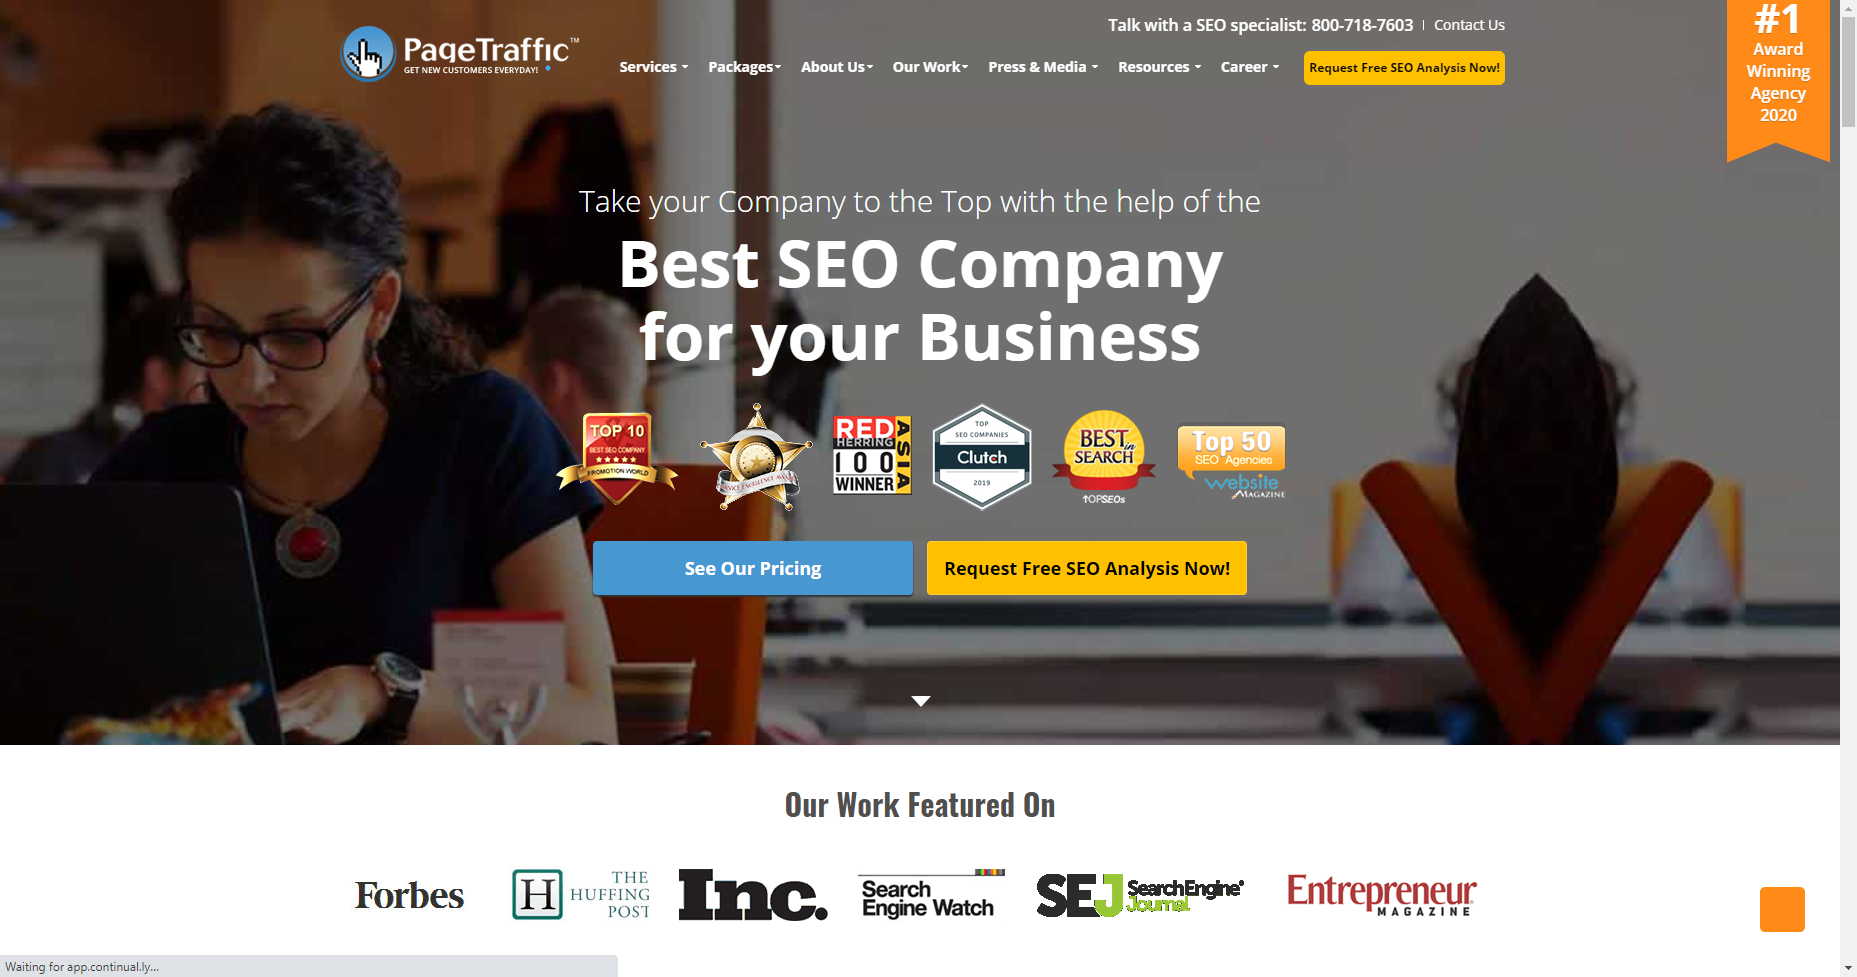 pagetraffic best white label seo company